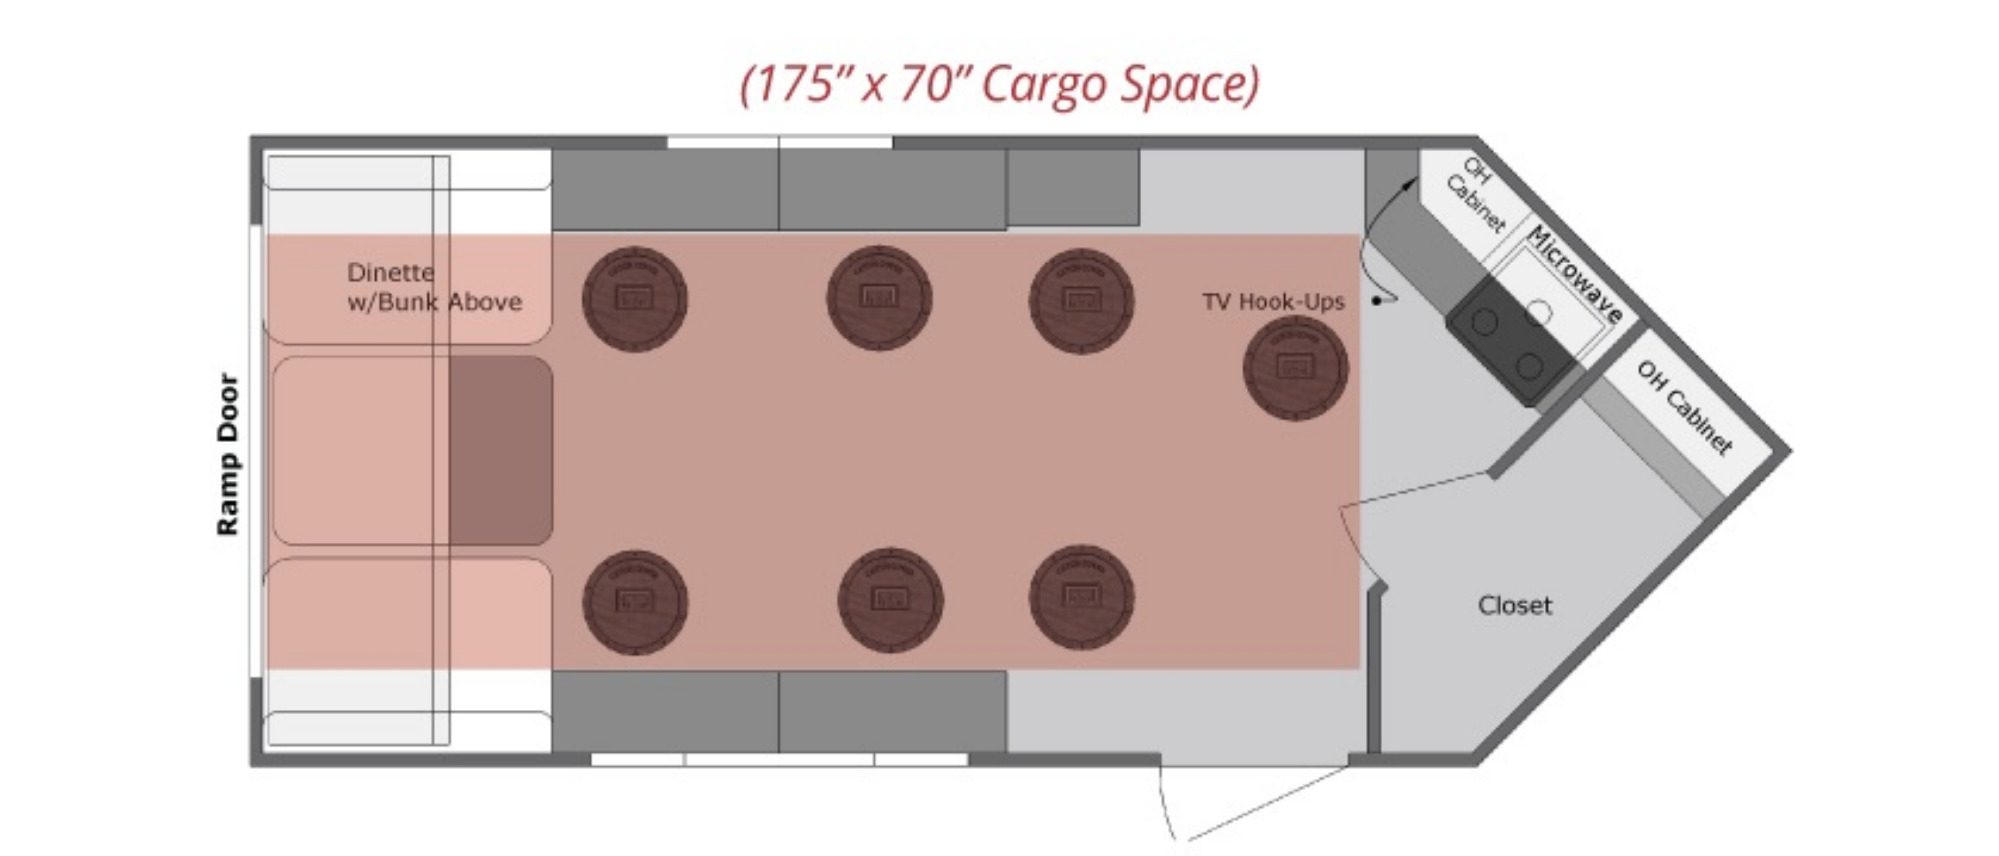 View Floor Plan for 2021 VOYAGER YETTI T816-DK